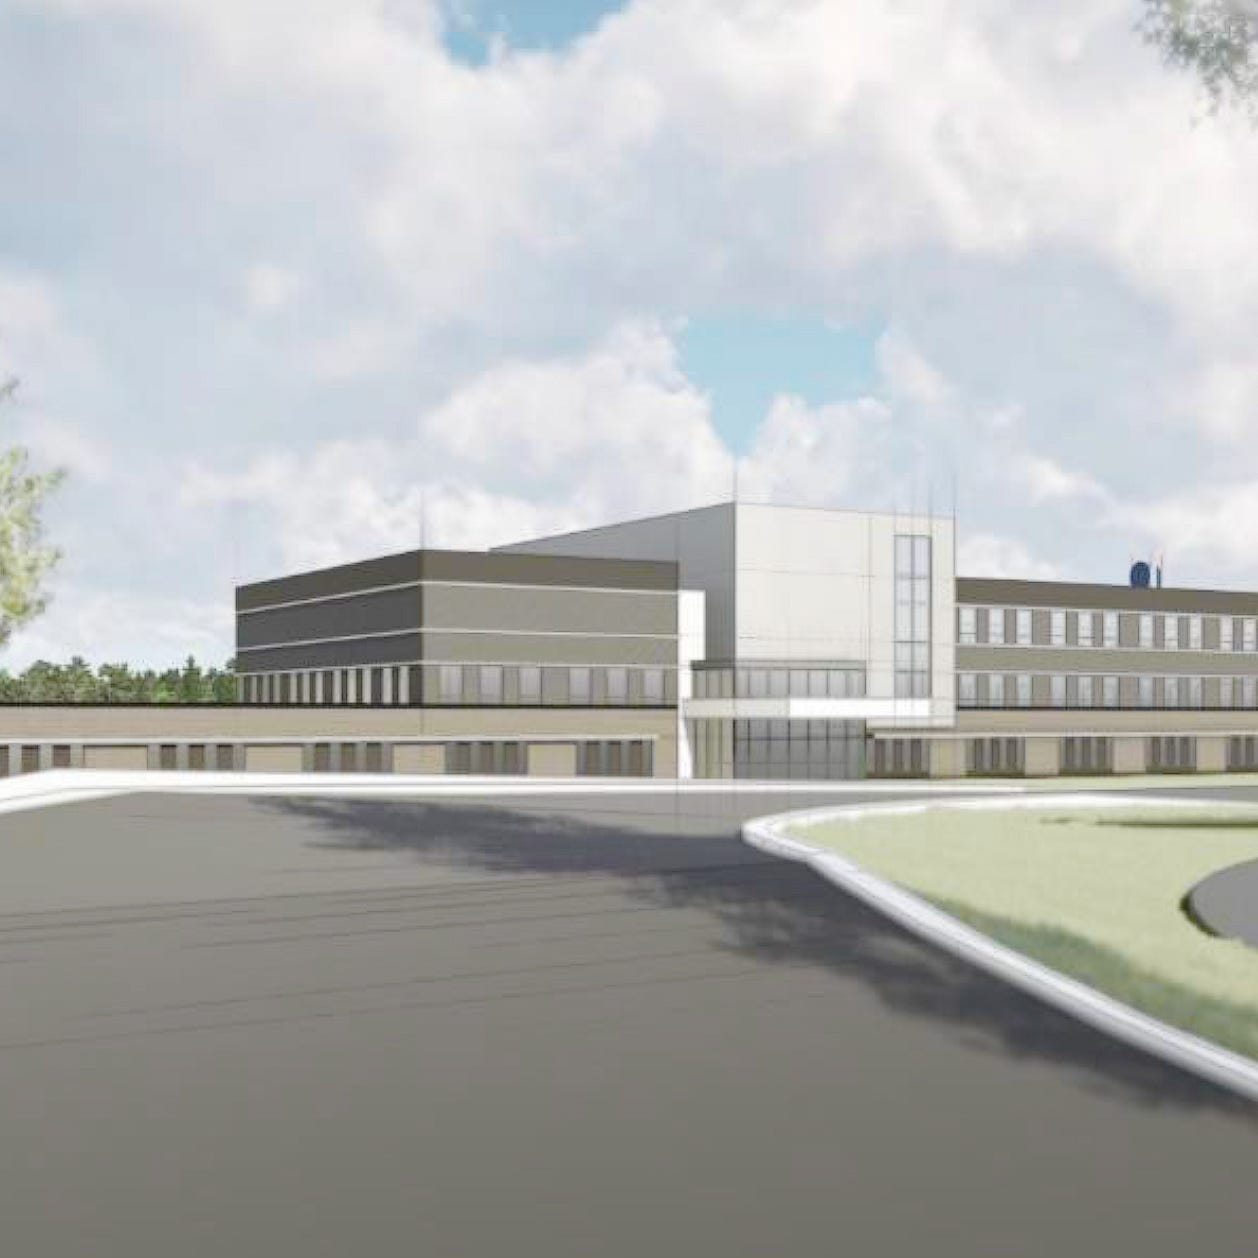 St. Joe's Health looks to construct medical building at Schoolcraft College